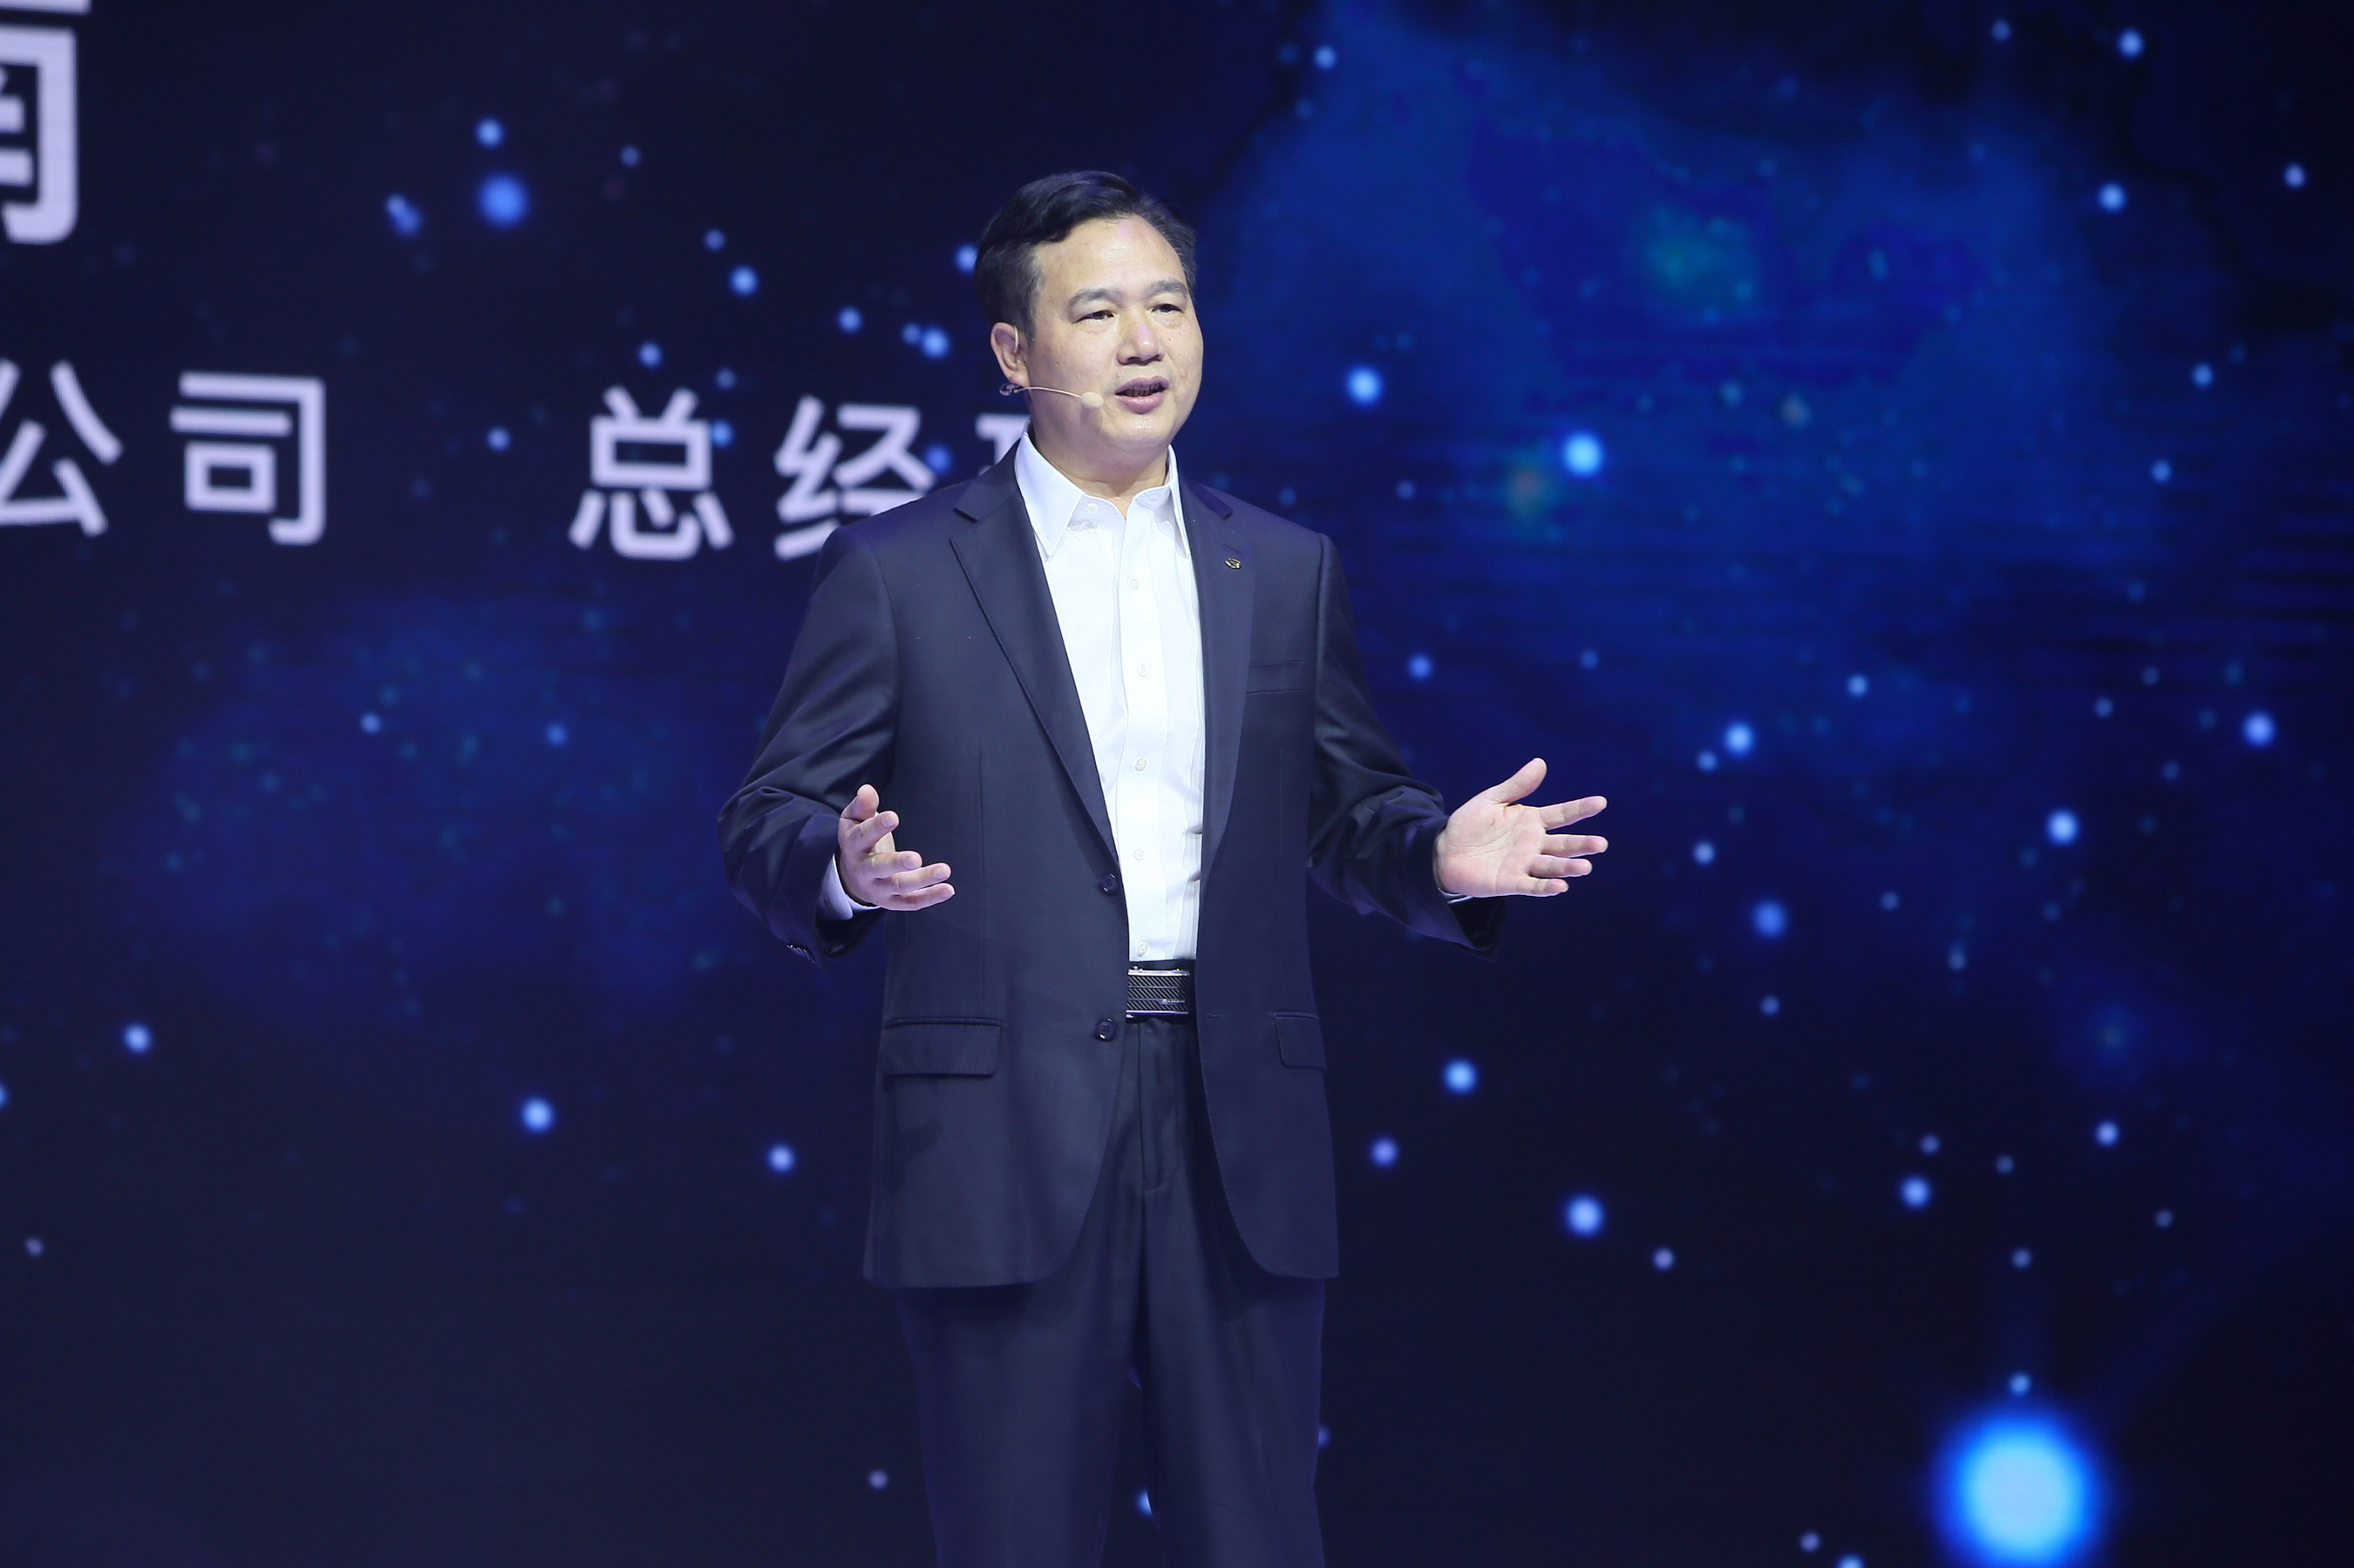 Mr. Gu Huinan, General Manager of GAC NE